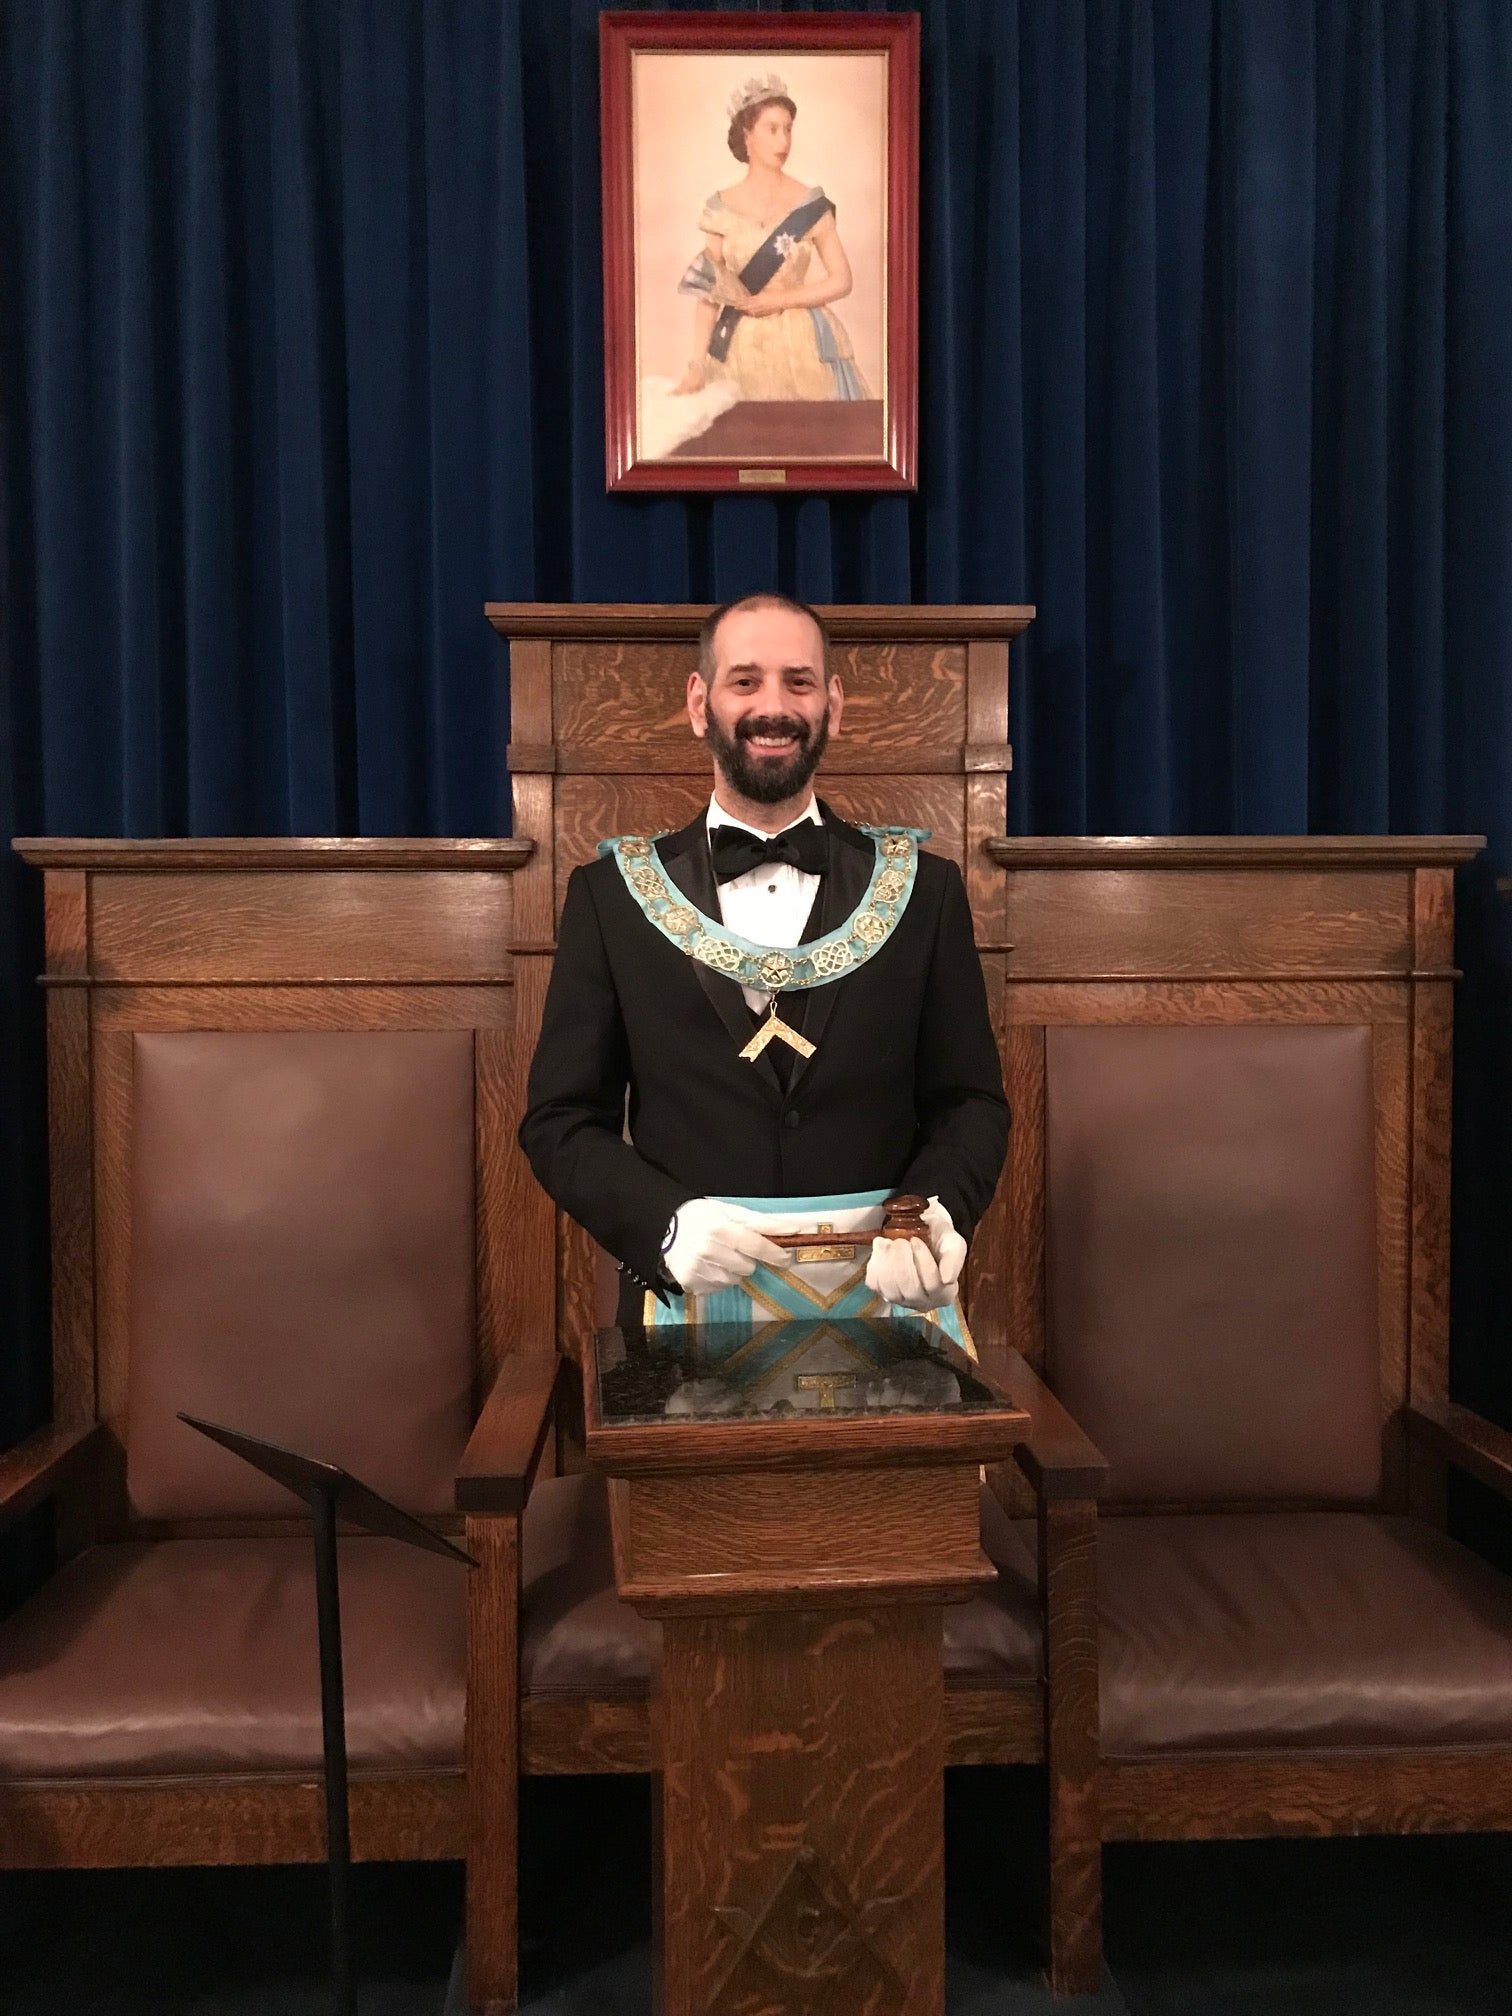 Jason Solomon, W.M. Ionic Lodge no. 526